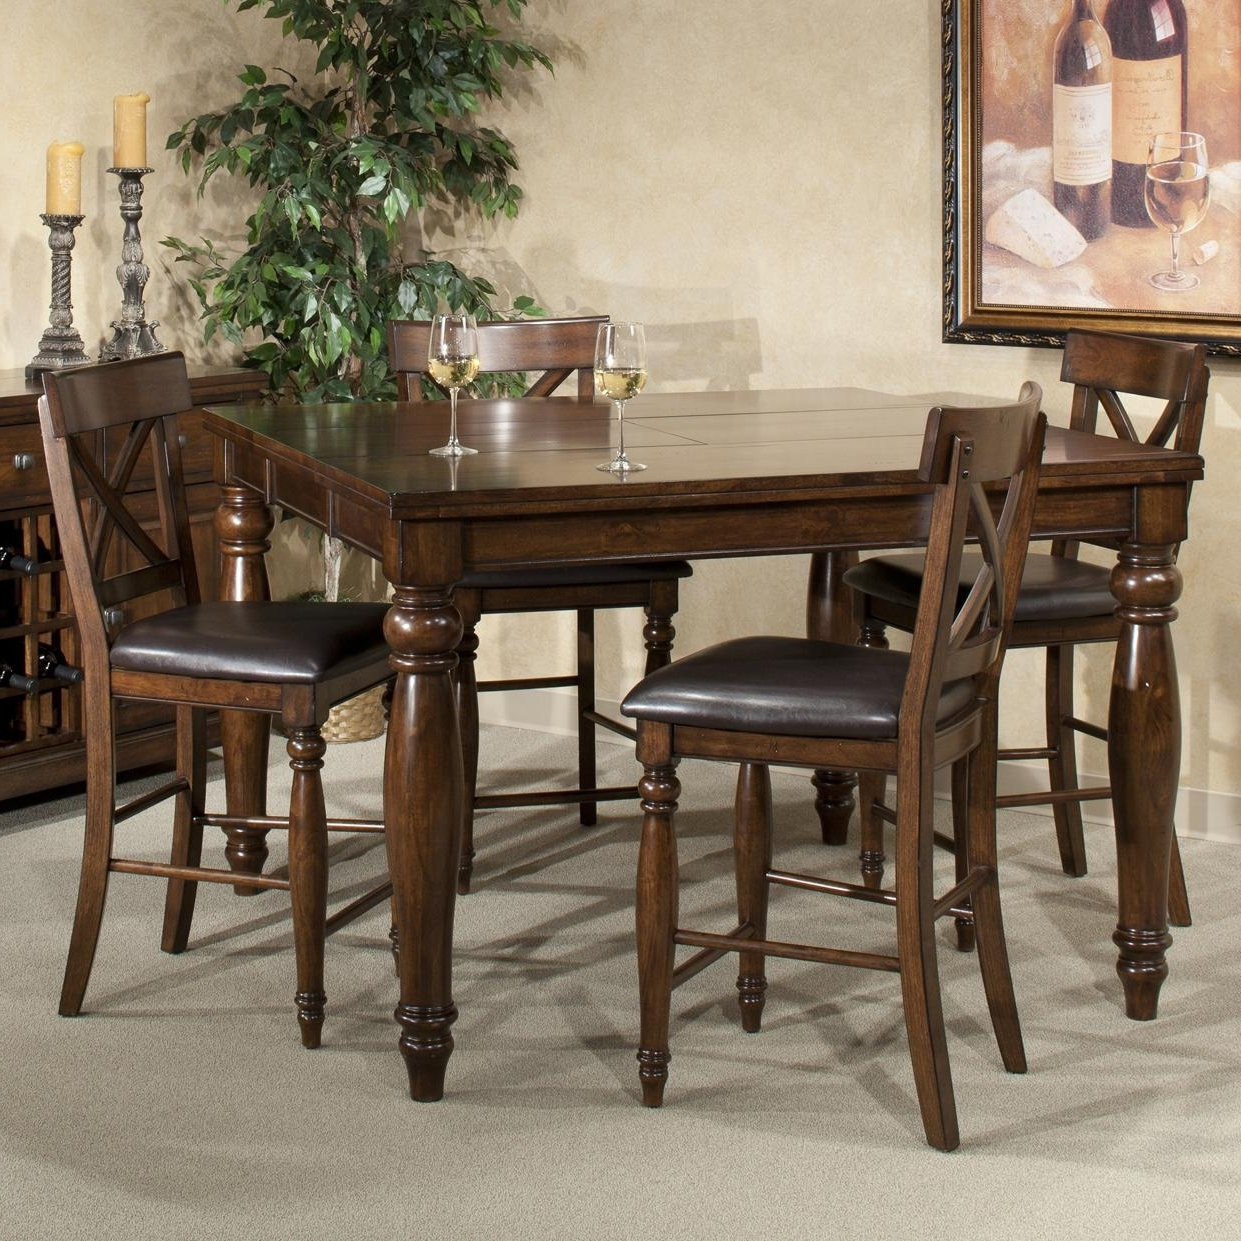 Intercon Kingston Five Piece Gathering Table And Stool Set Throughout Preferred Kingston Dining Tables And Chairs (View 6 of 25)